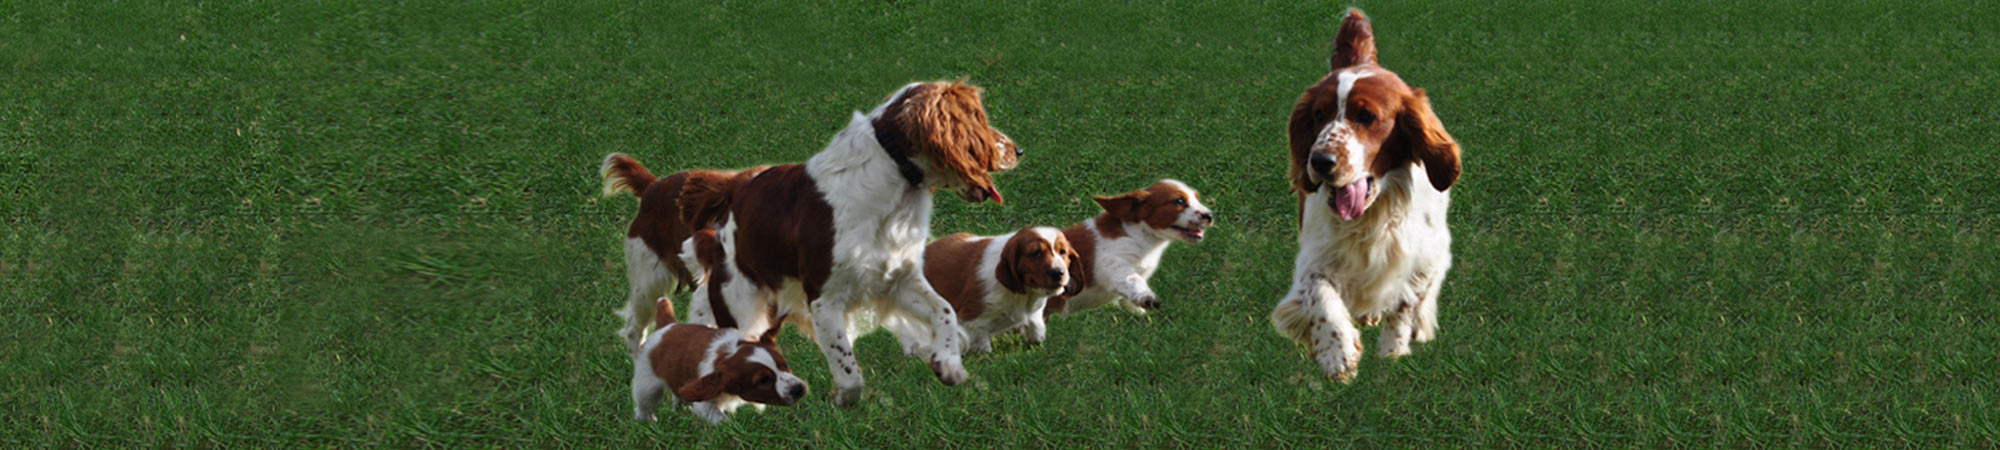 Welsh Springer Spaniels at play